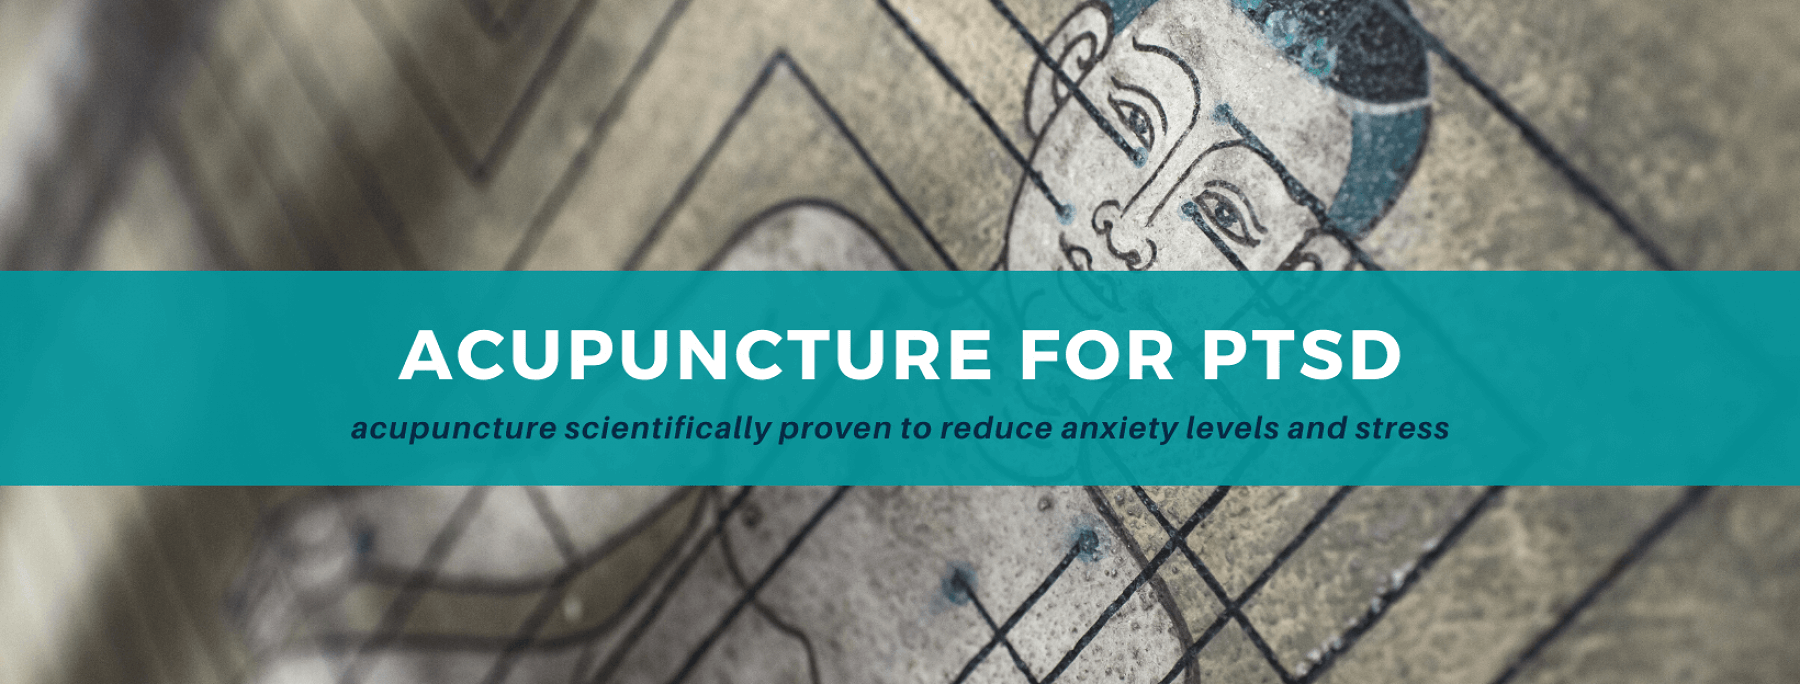 Medical Research Shows Acupuncture Effective for the Treatment of PTSD